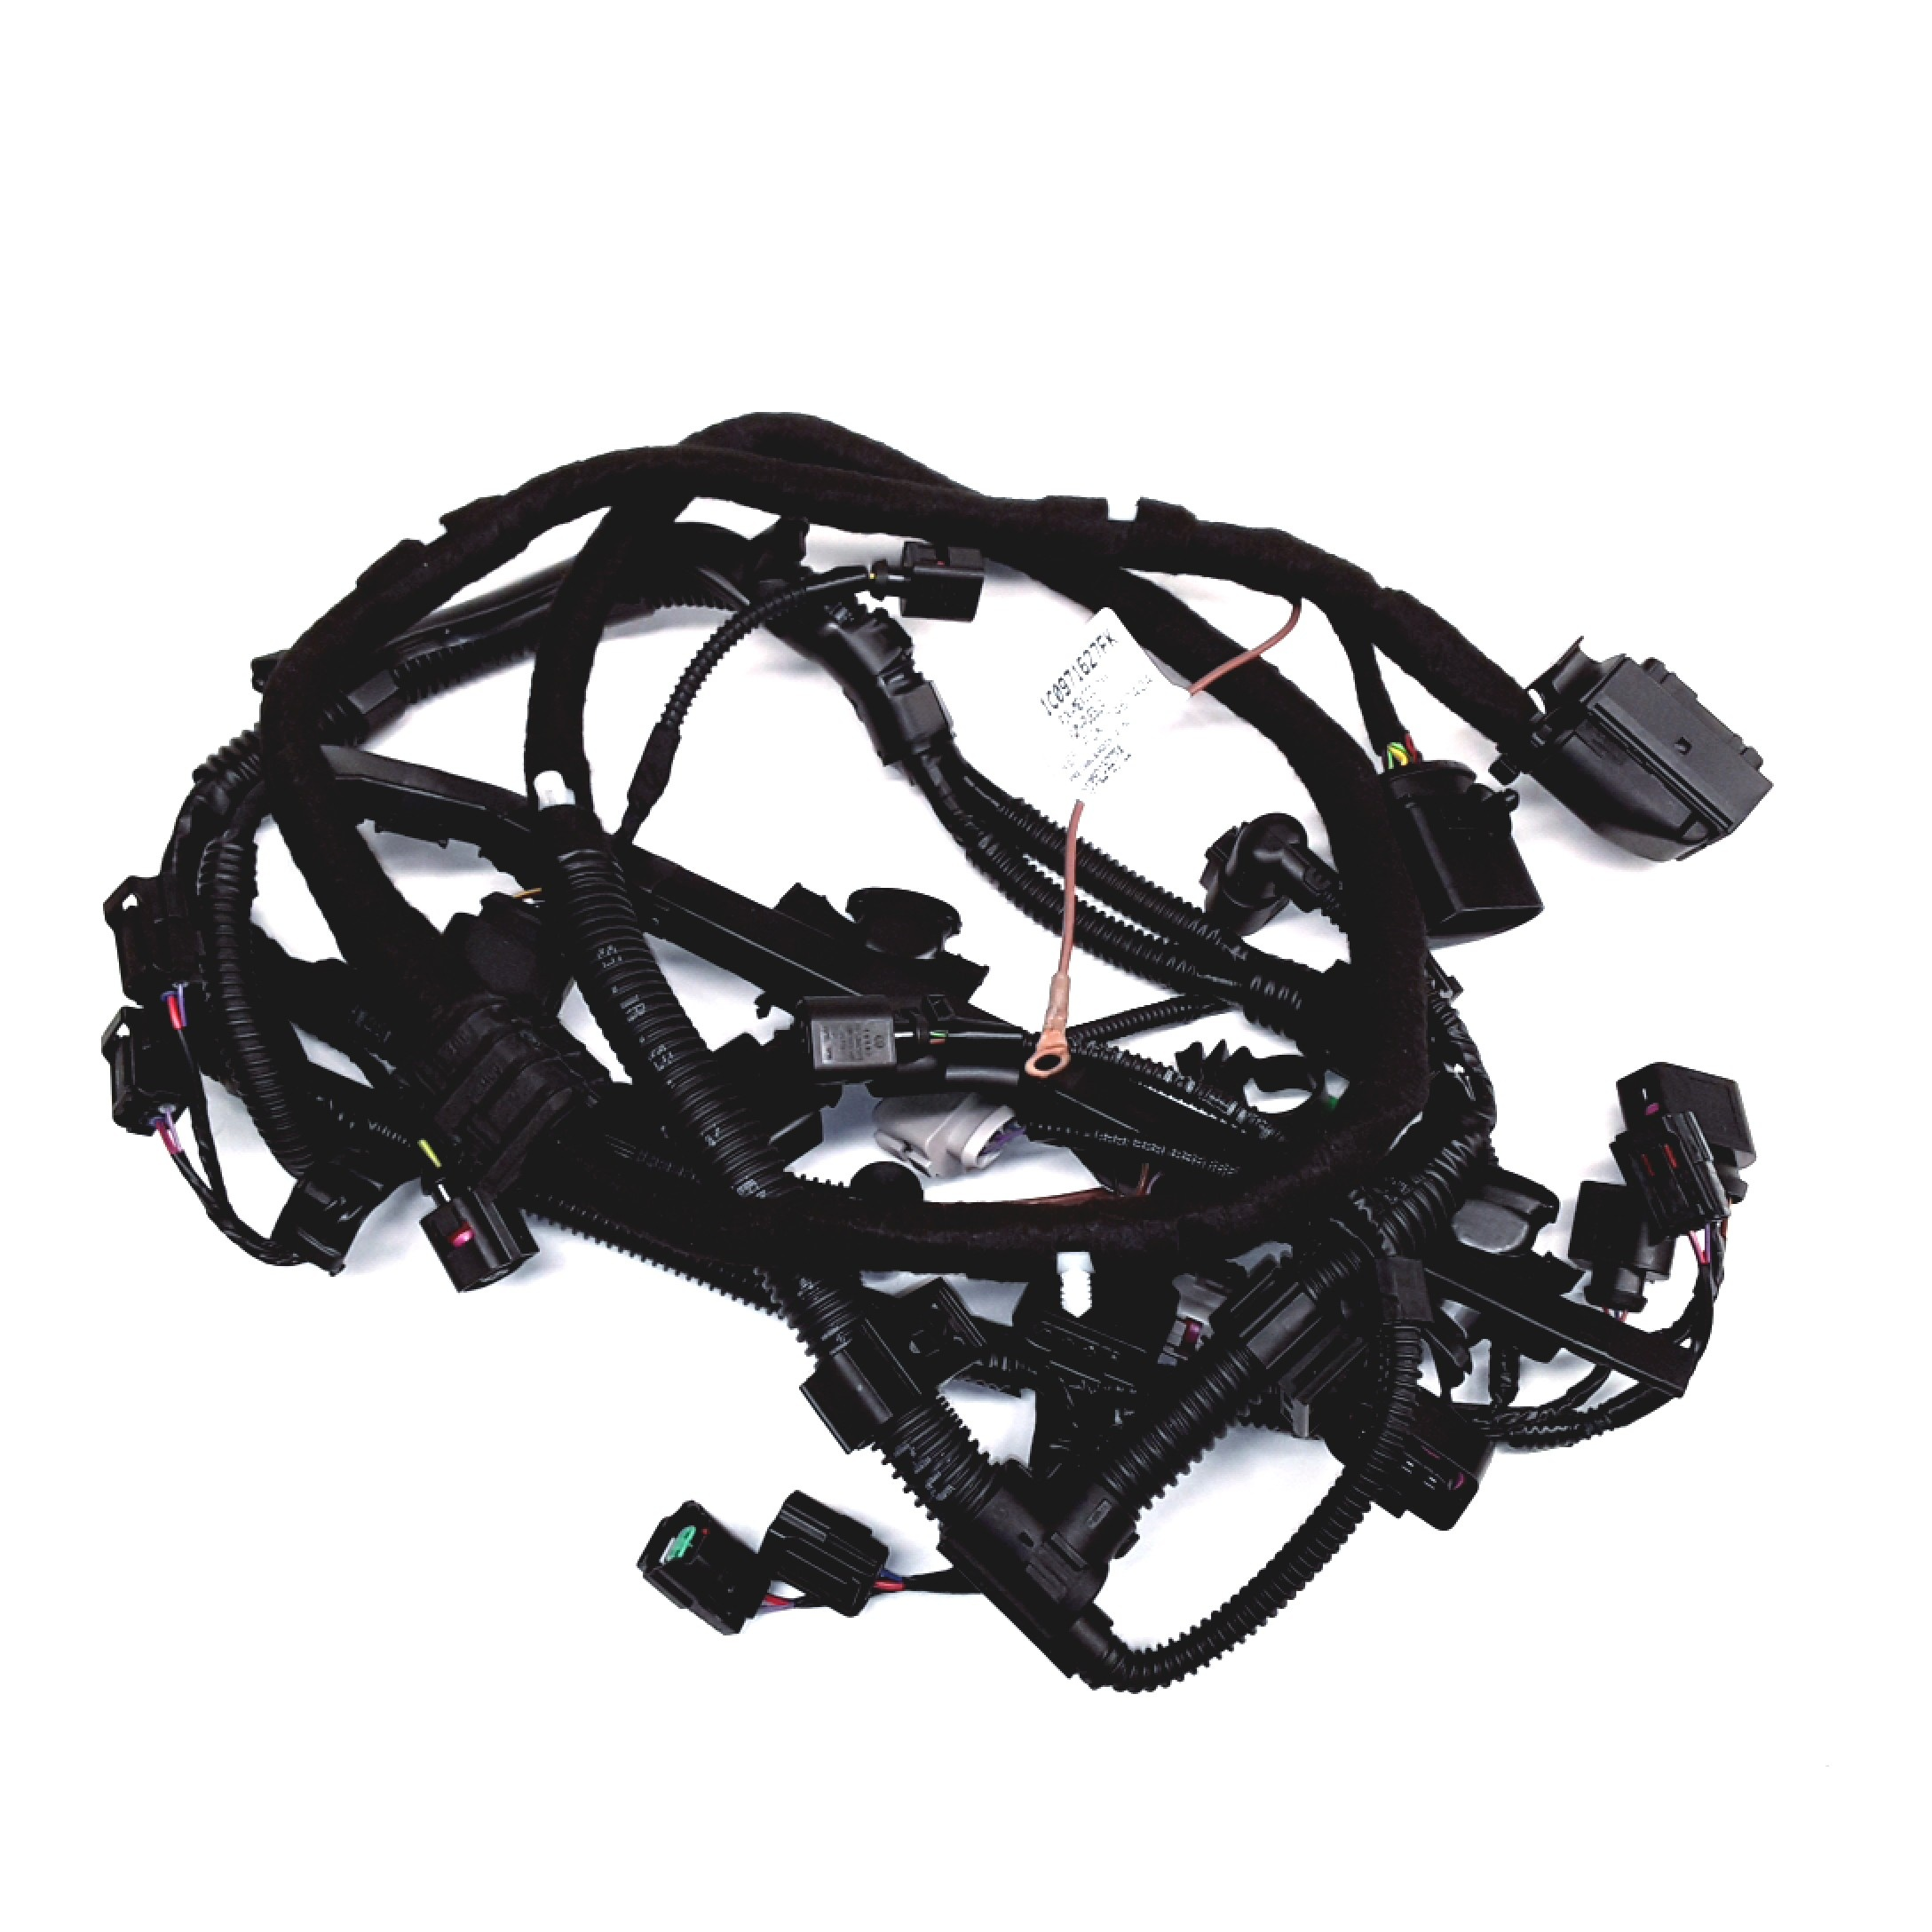 Vw Beetle Engine Wiring Harness : Volkswagen beetle convertible engine harness liter